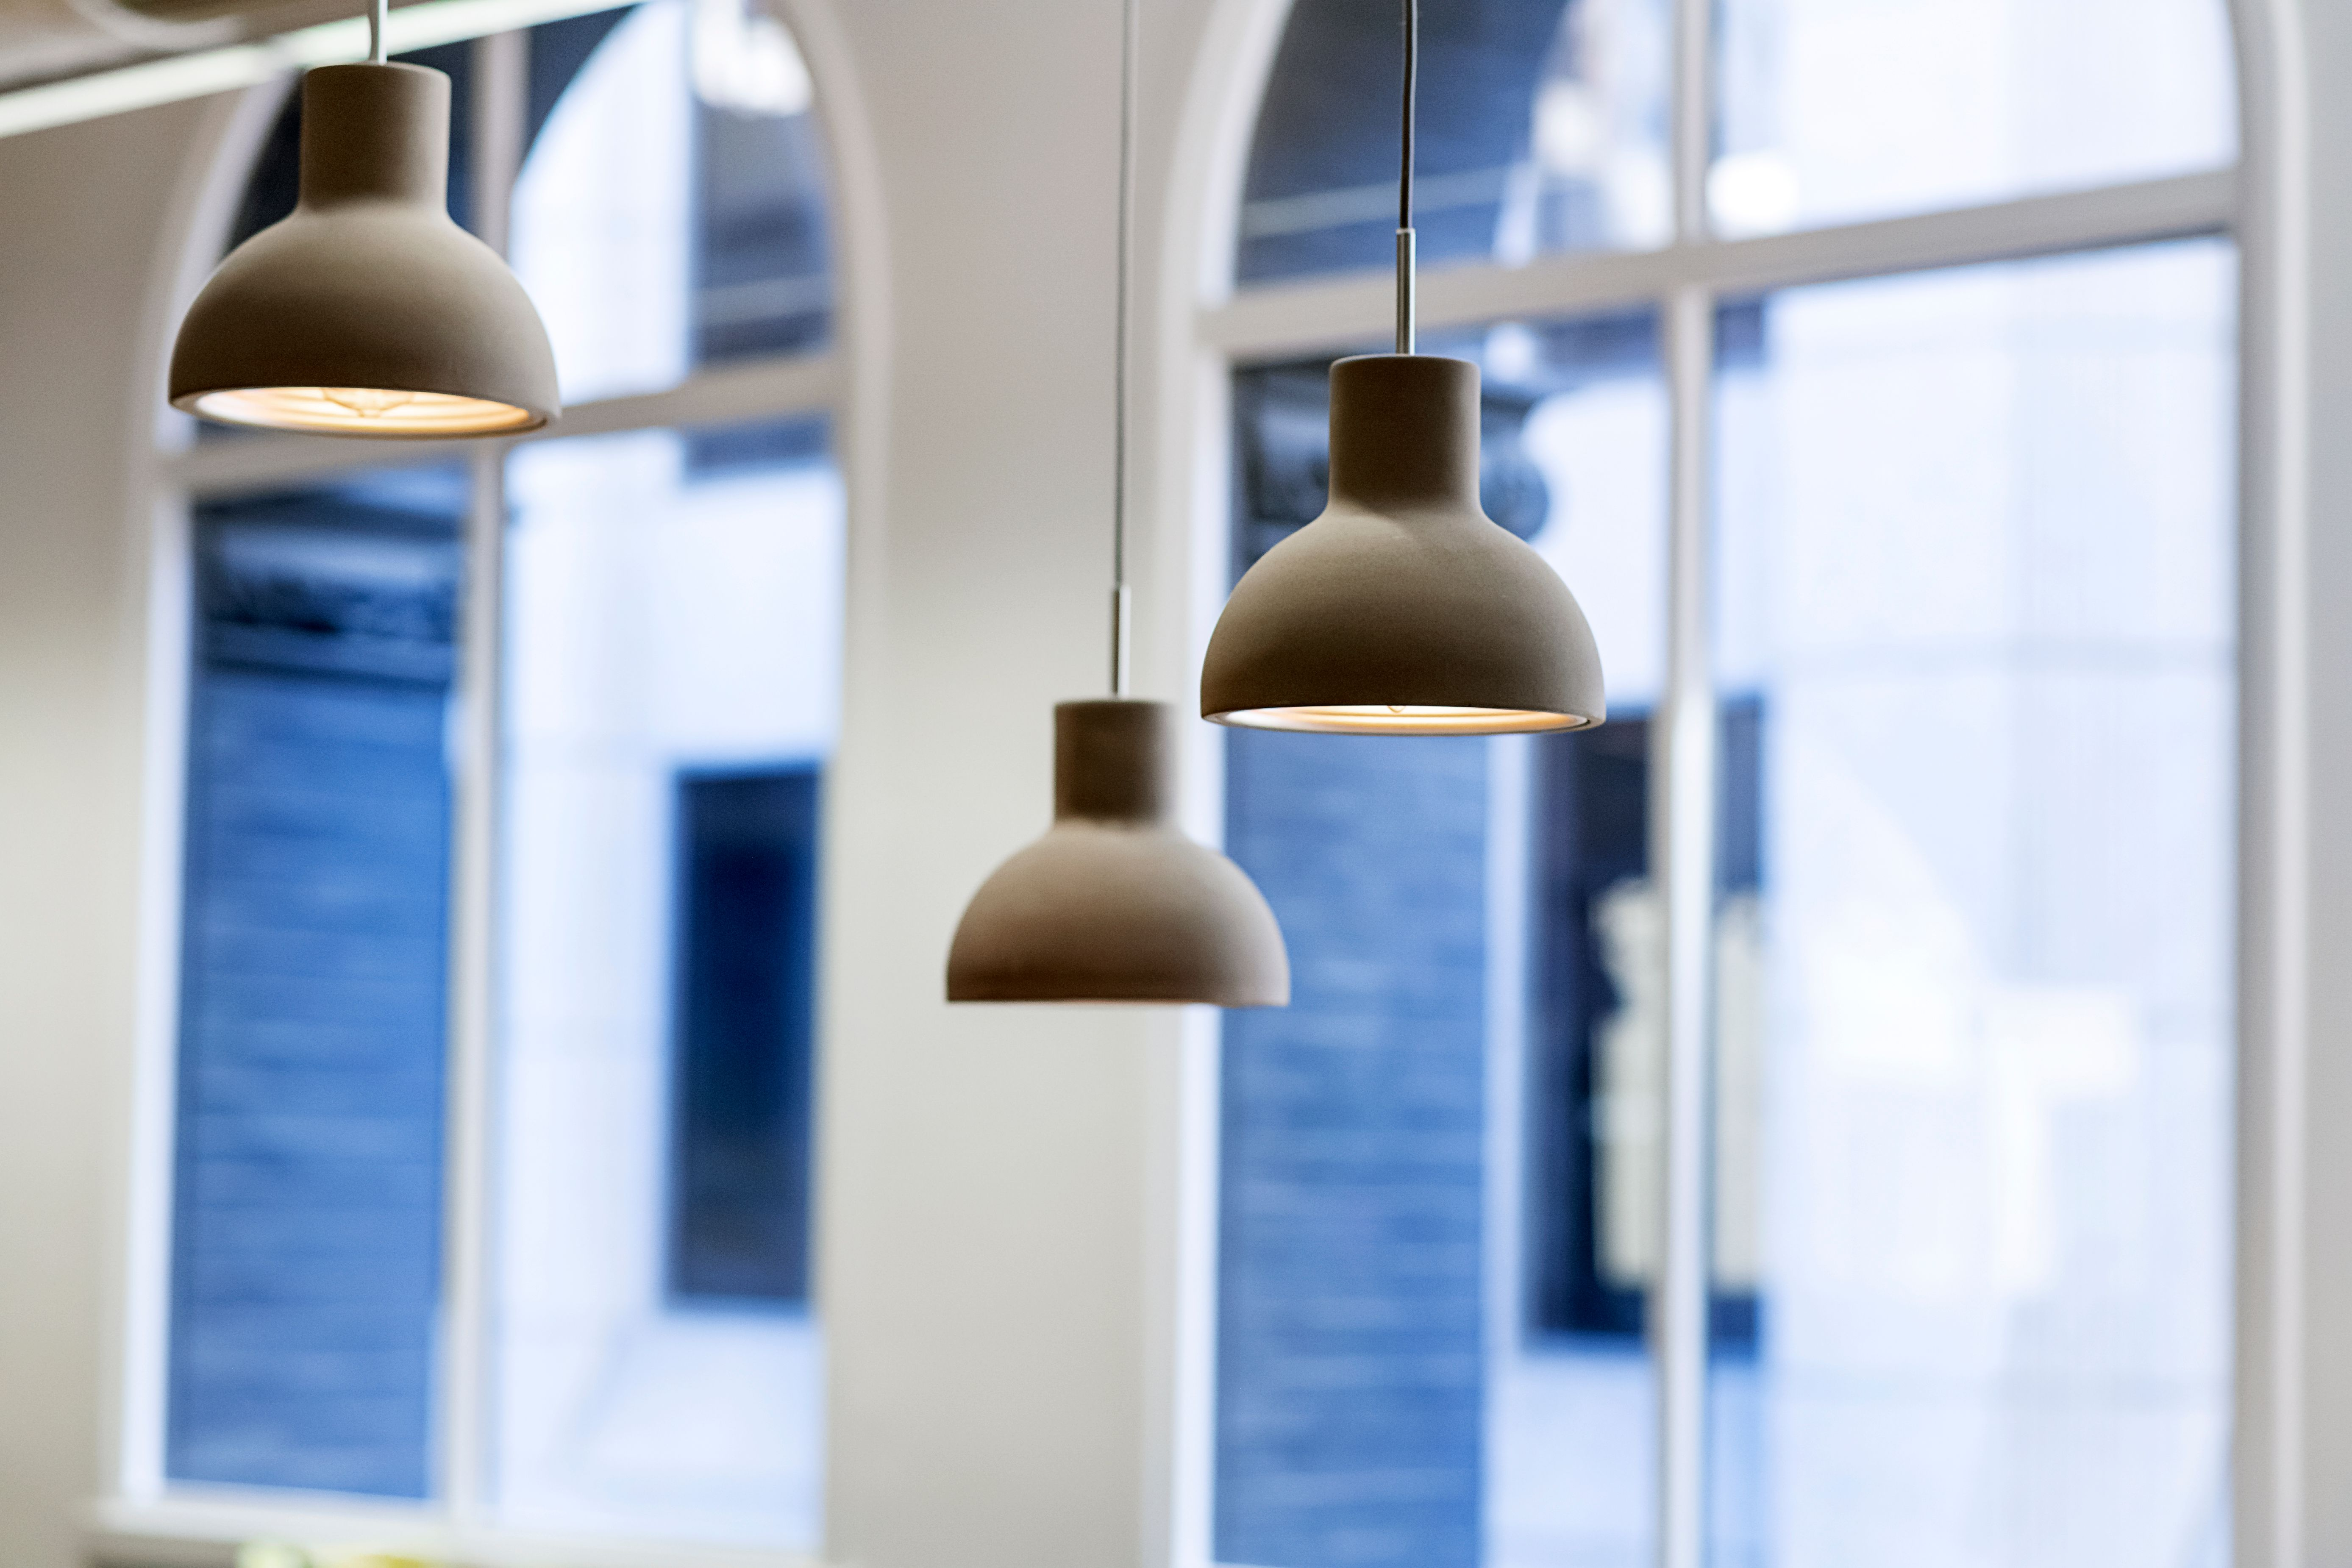 Three bulbs hanging from the ceiling